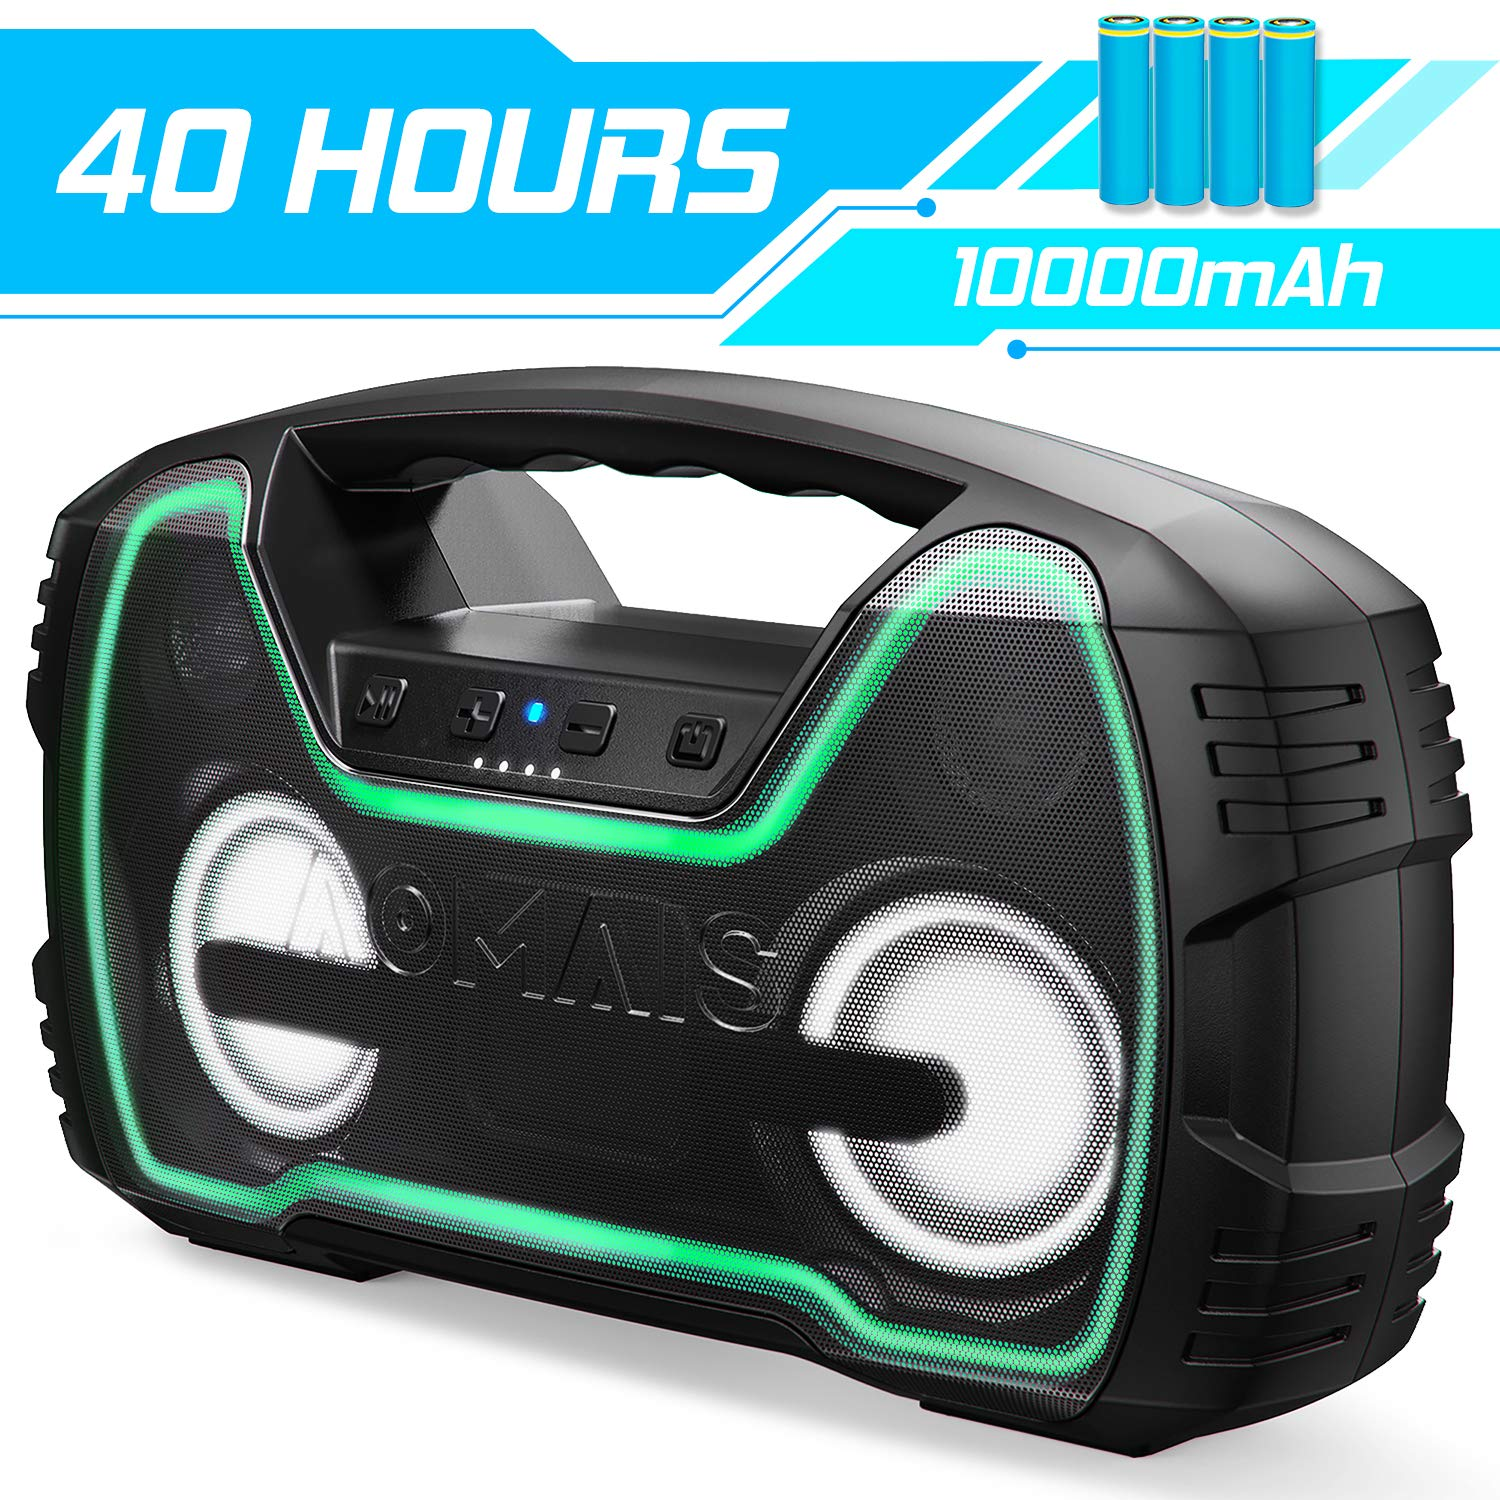 Bluetooth Speakers, AOMAIS 40-Hour Playtime Portable Outdoor Wireless Speaker with 10000mAh Battery, 25W Loud Volume & Deeper Bass / IPX7 Waterproof/LED Lights for Party, Pool, Beach [2019 Newest] by AOMAIS